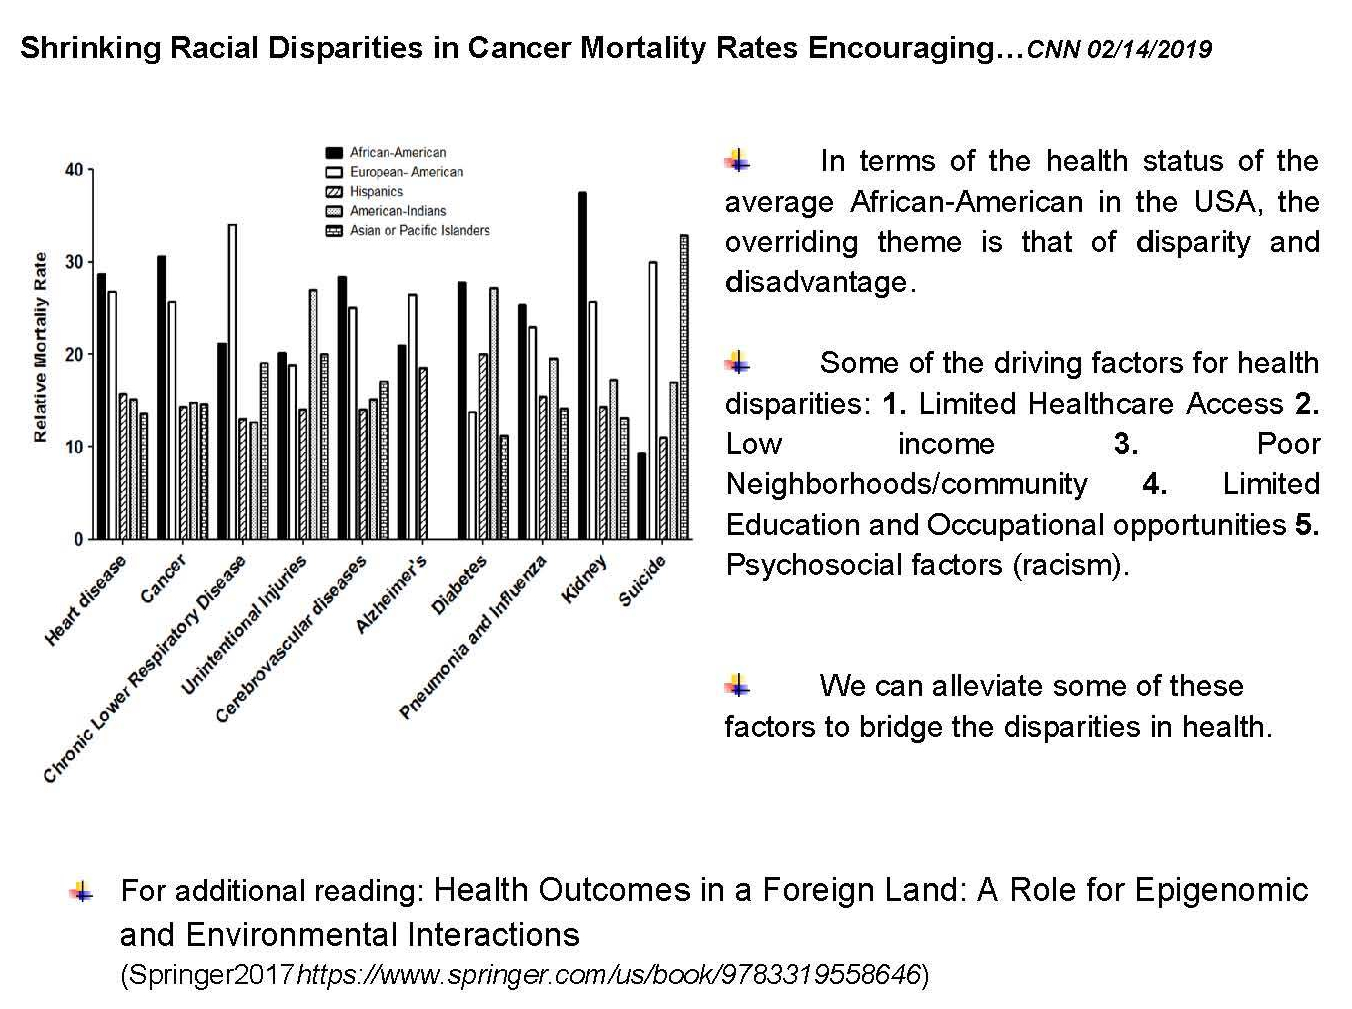 Shrinking Racial Disparities in Cancer Mortality Rates Encouraging